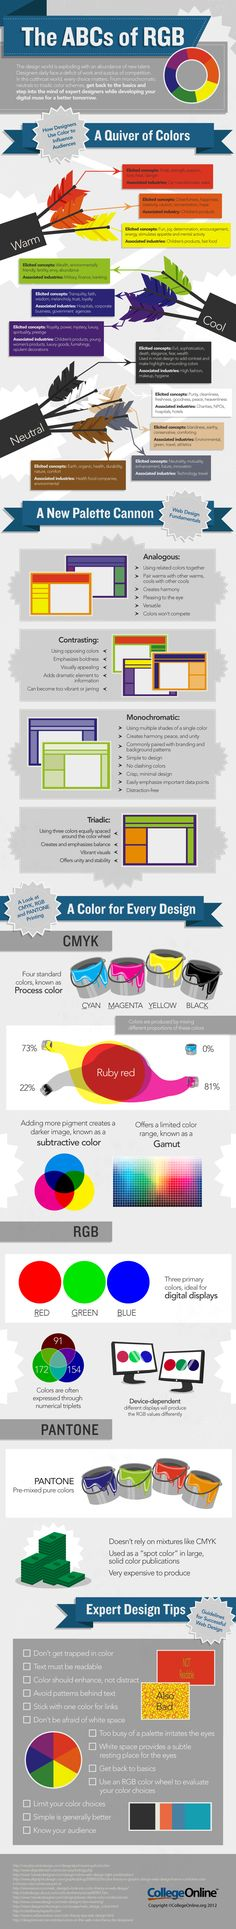 Color Theory and the Meaning Behind COLOR - #Design essentials